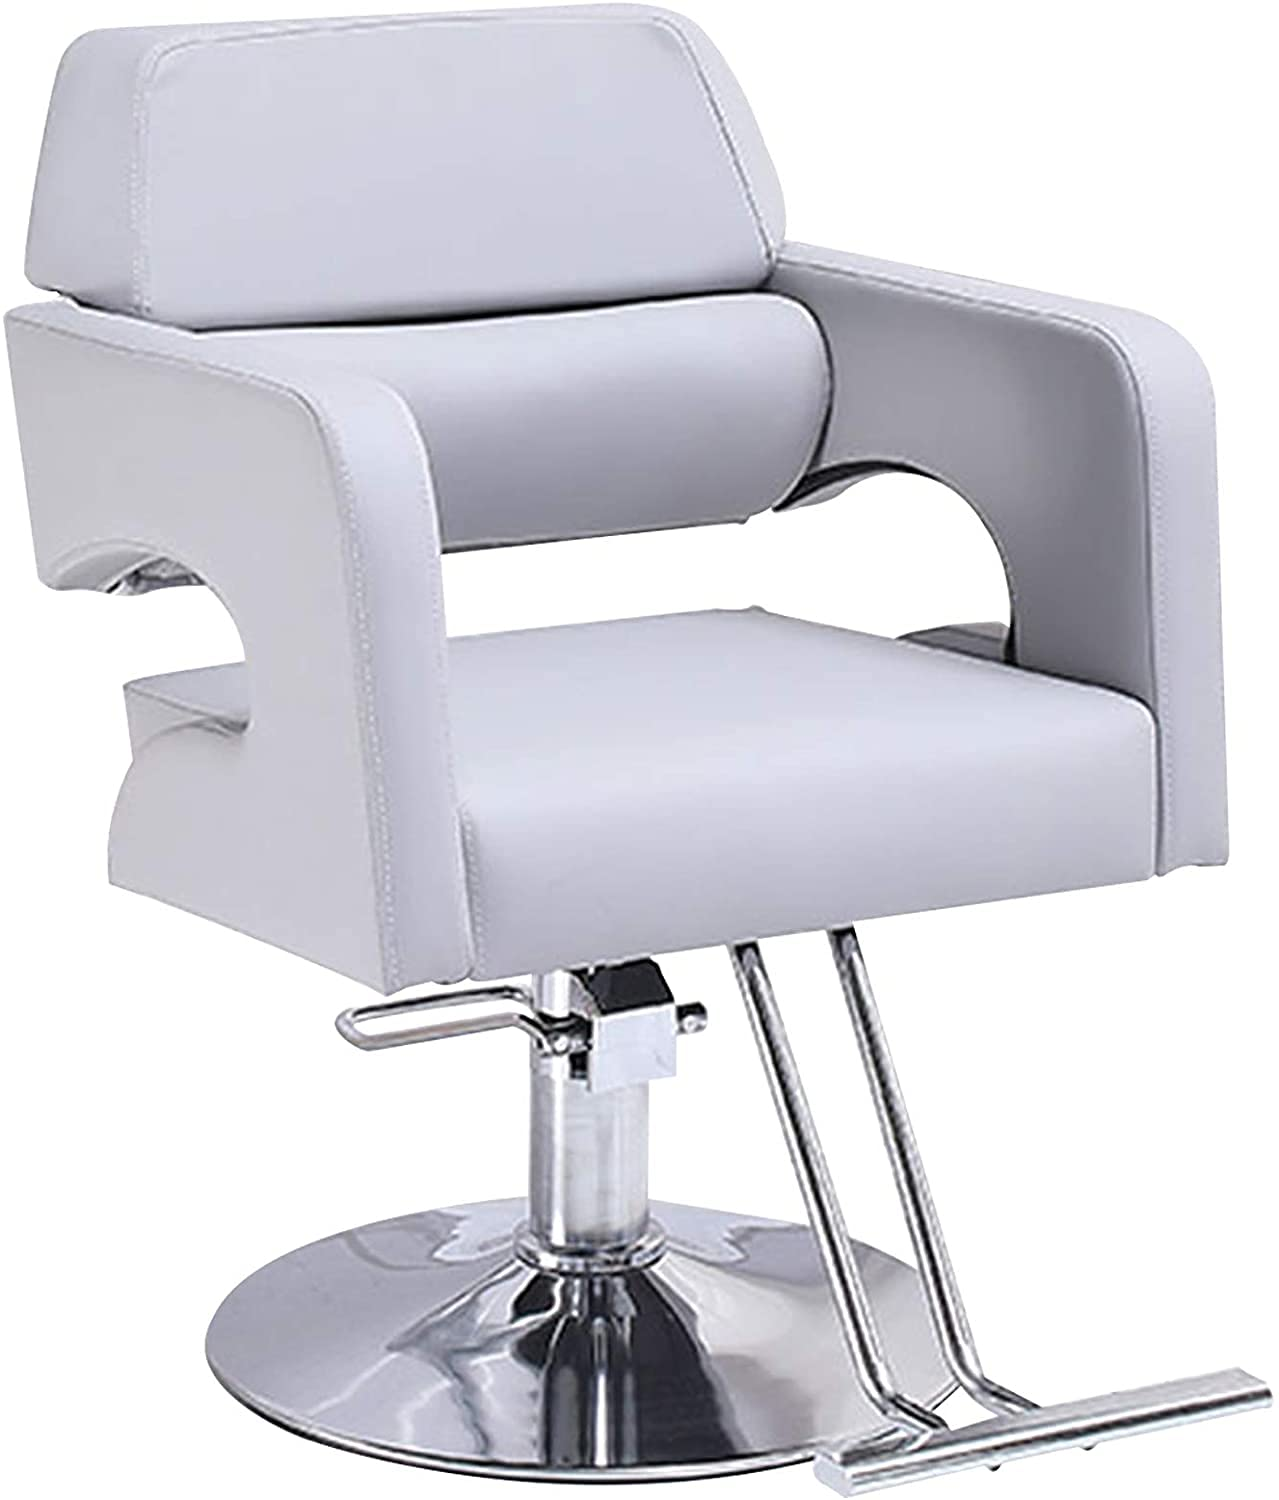 Barber Chair Salon Hairdressing He Cheap sale Ranking TOP13 360 ° Swiveling